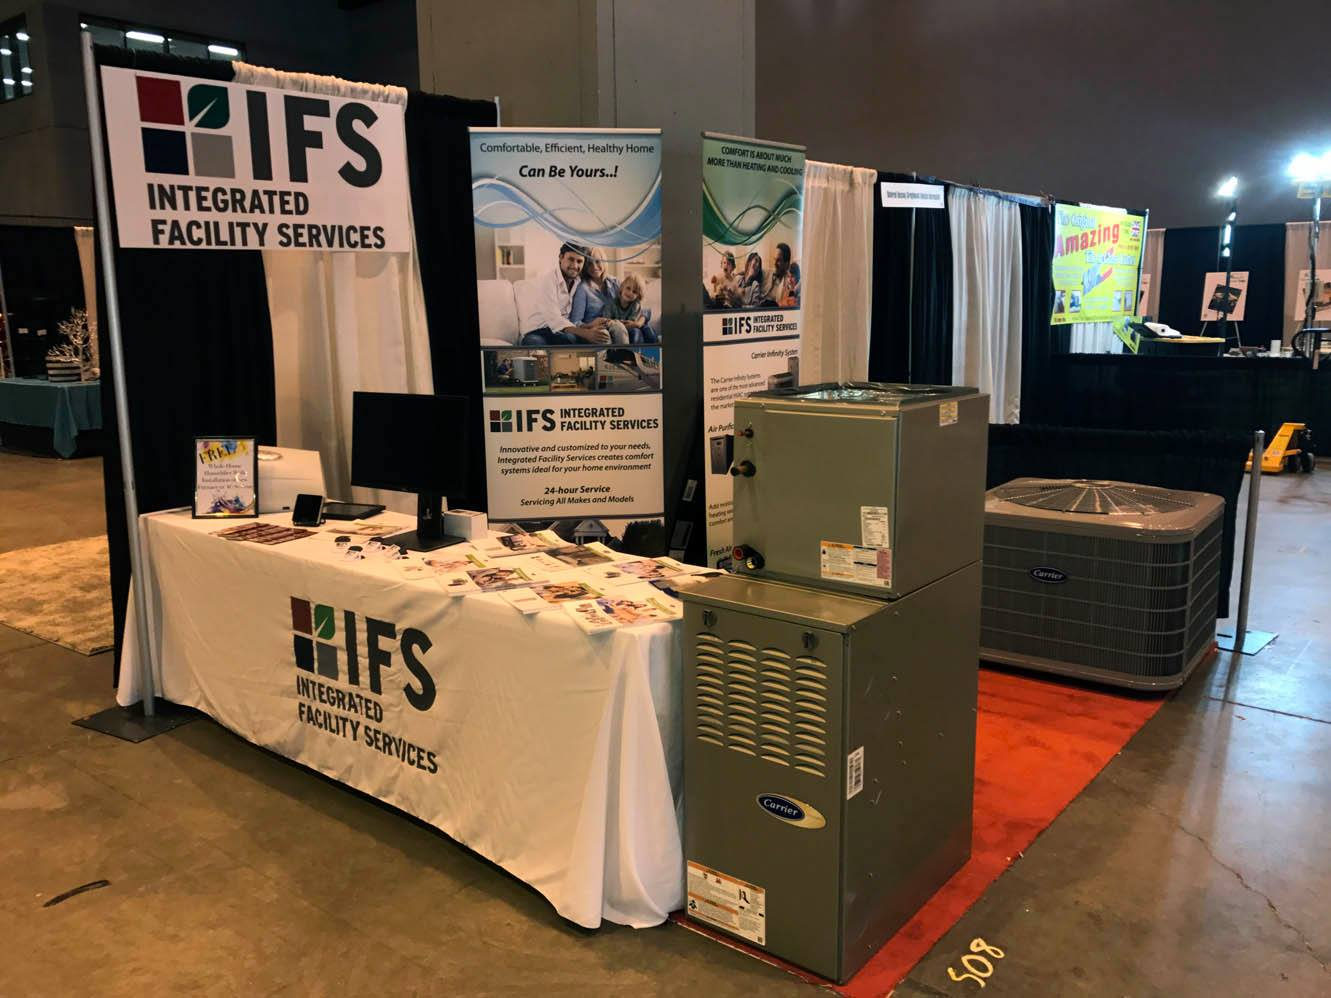 st louis home and garden show 2017 integrated facility services